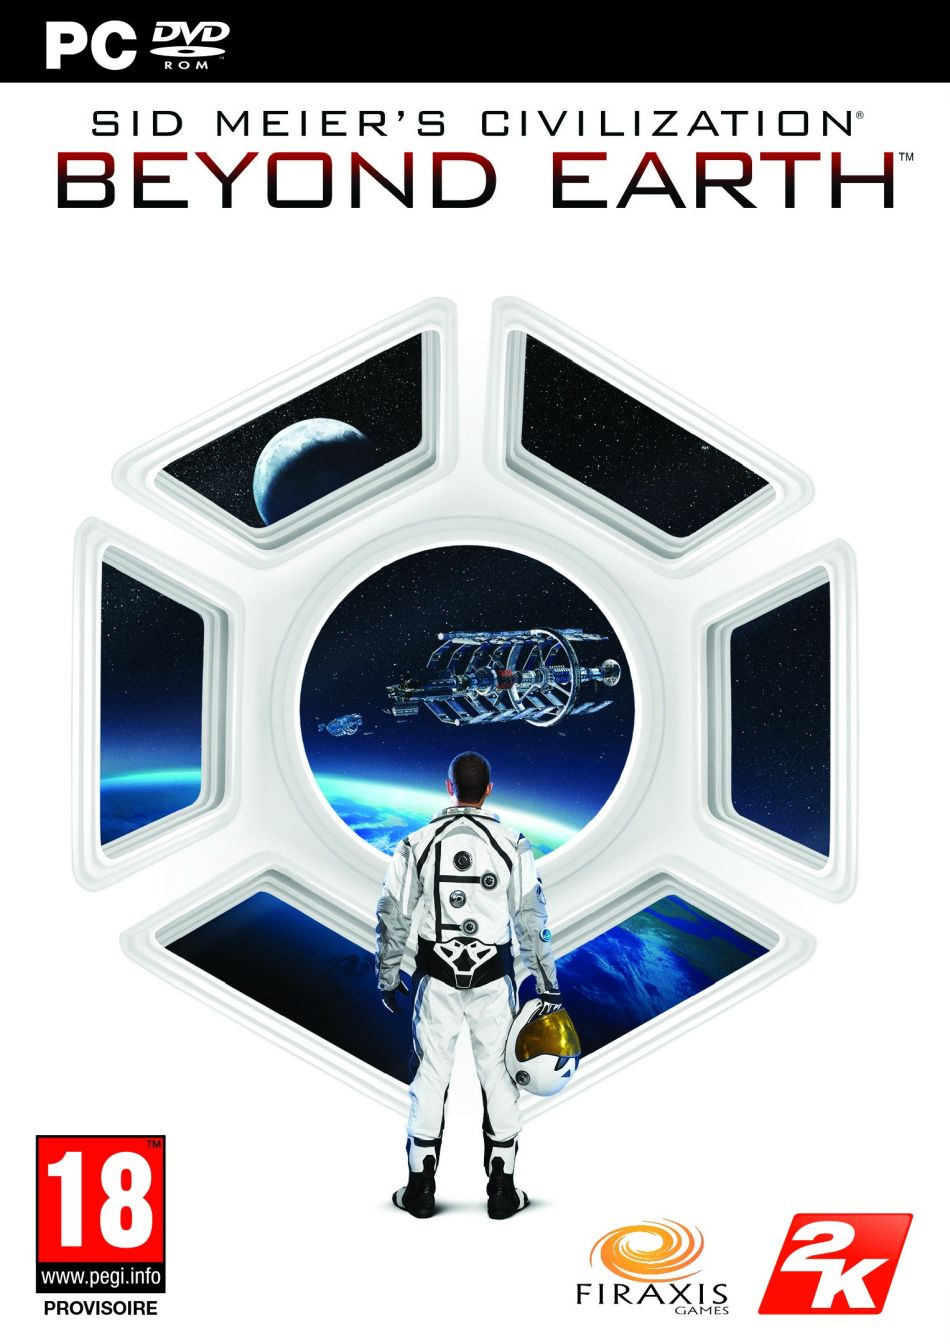 Civilization-Beyond-Earth-1